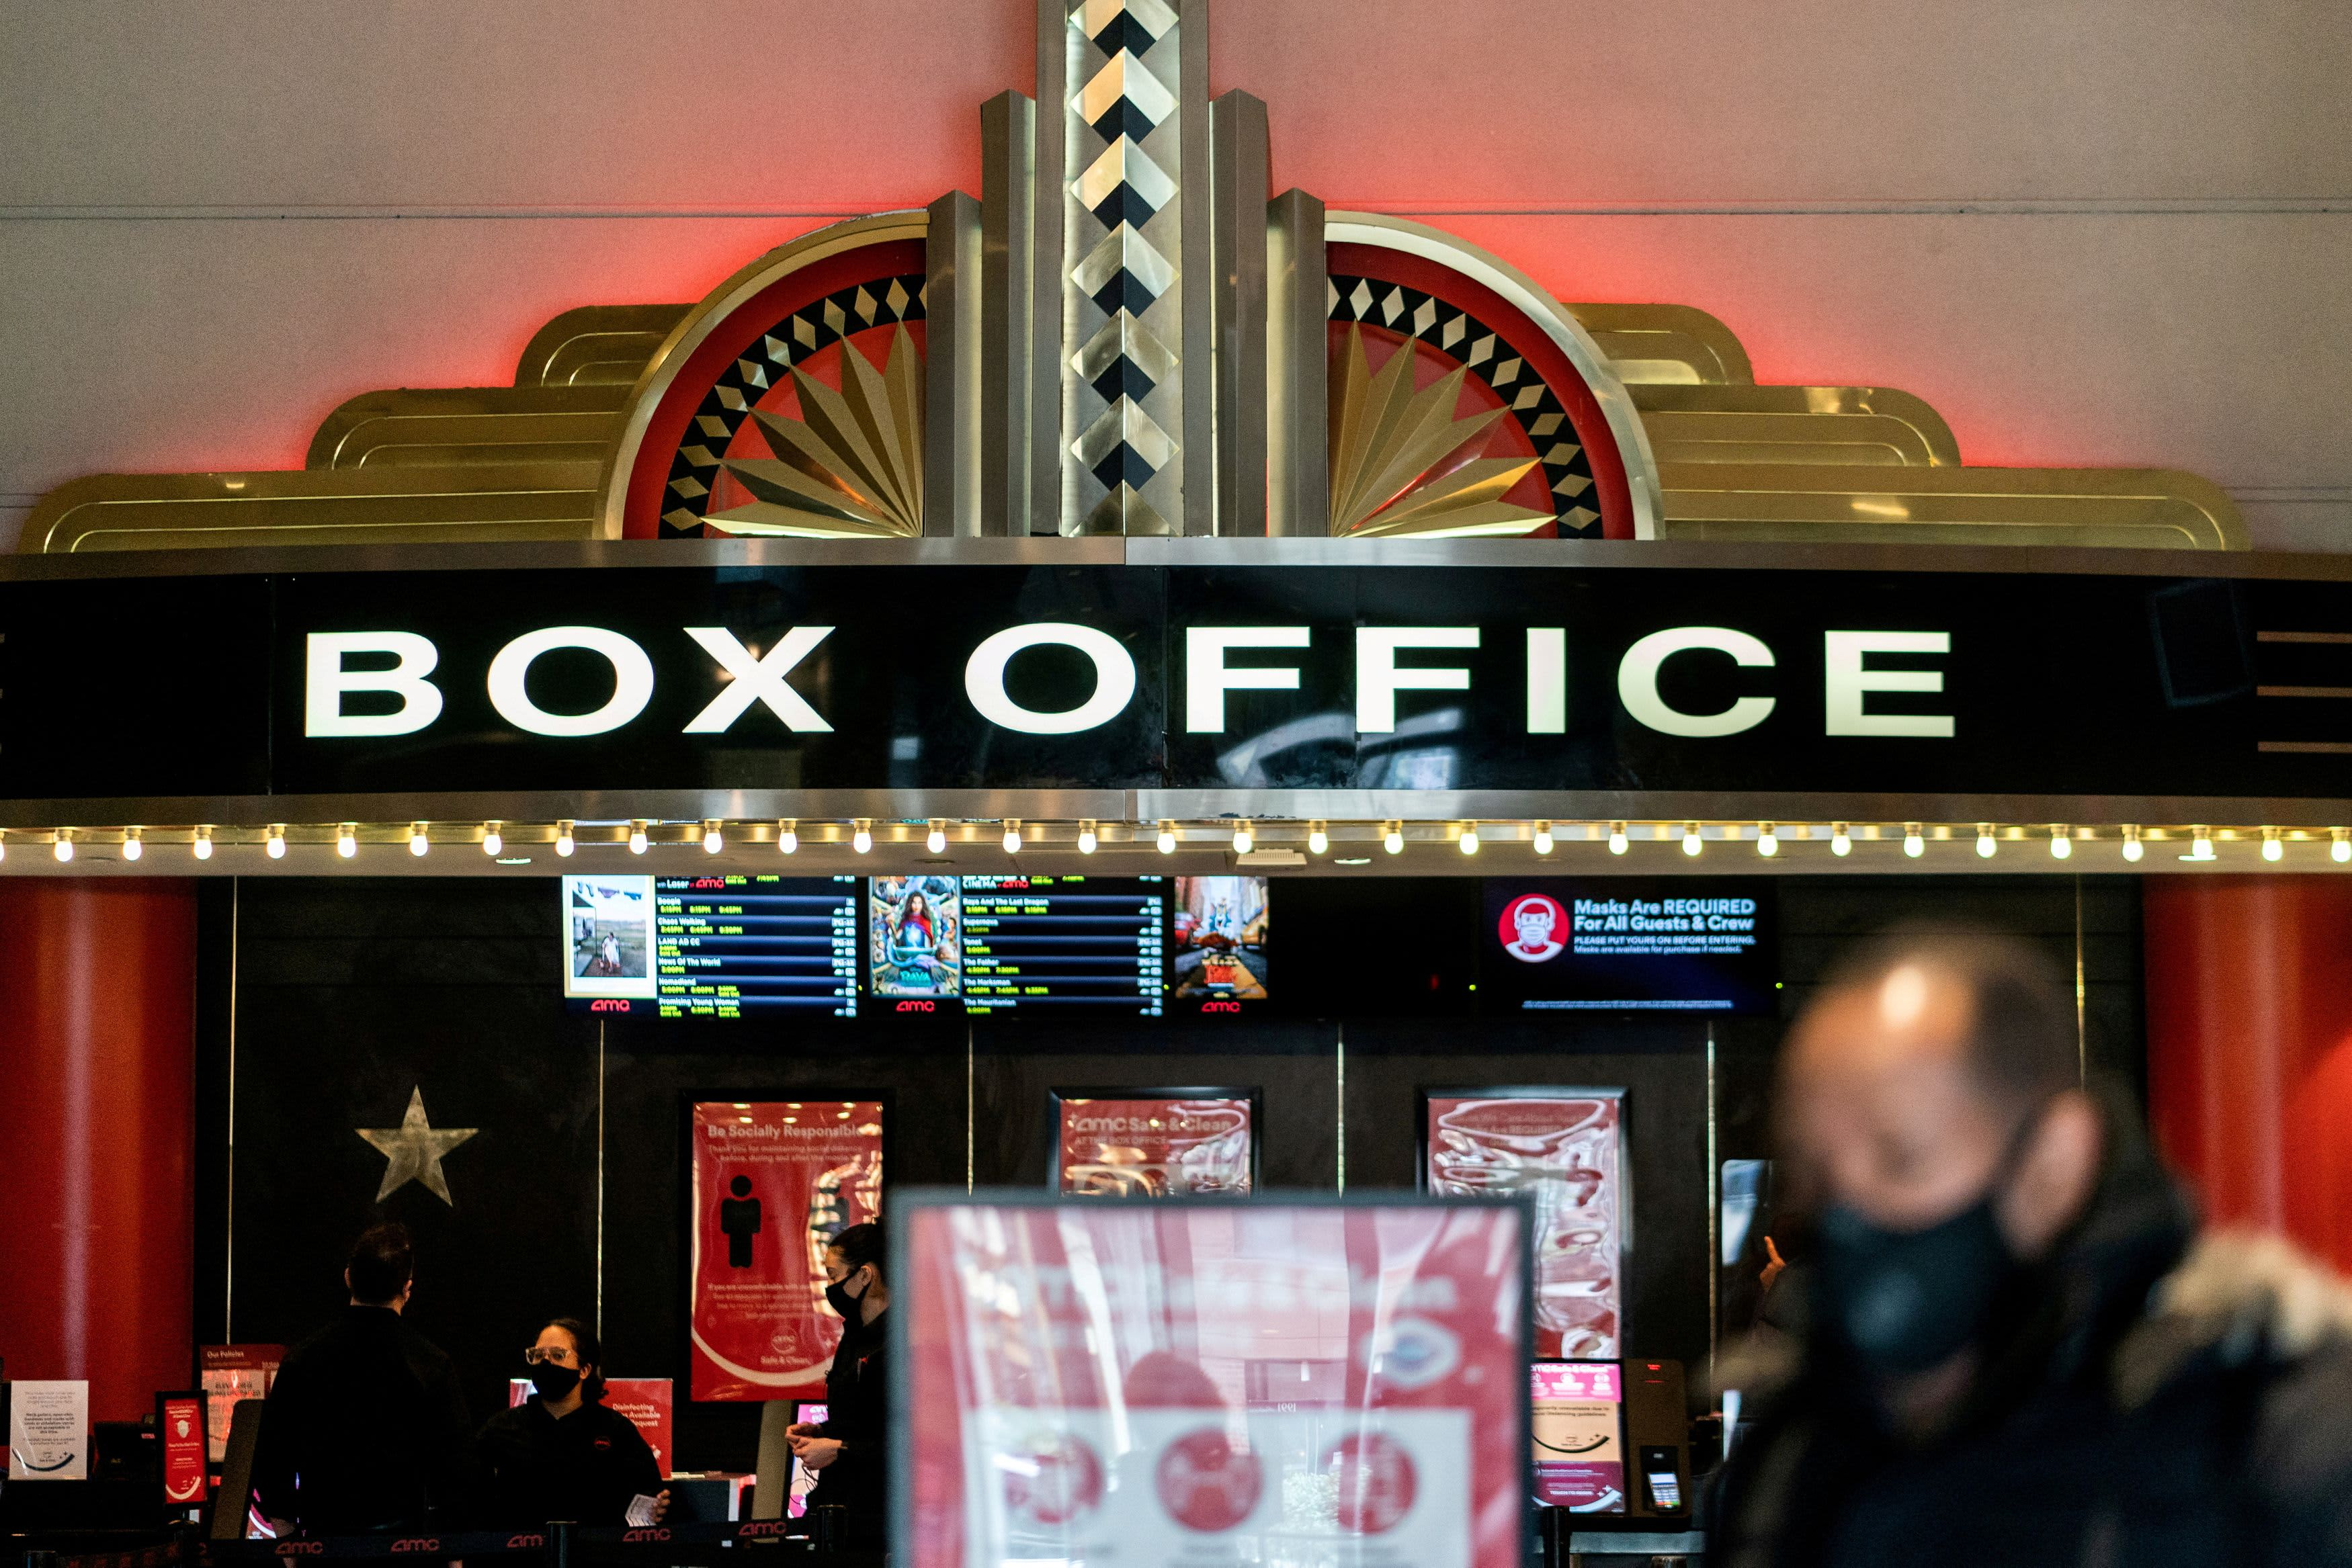 Just as the box office hit its stride, the delta variant appeared, with the power to halt progress